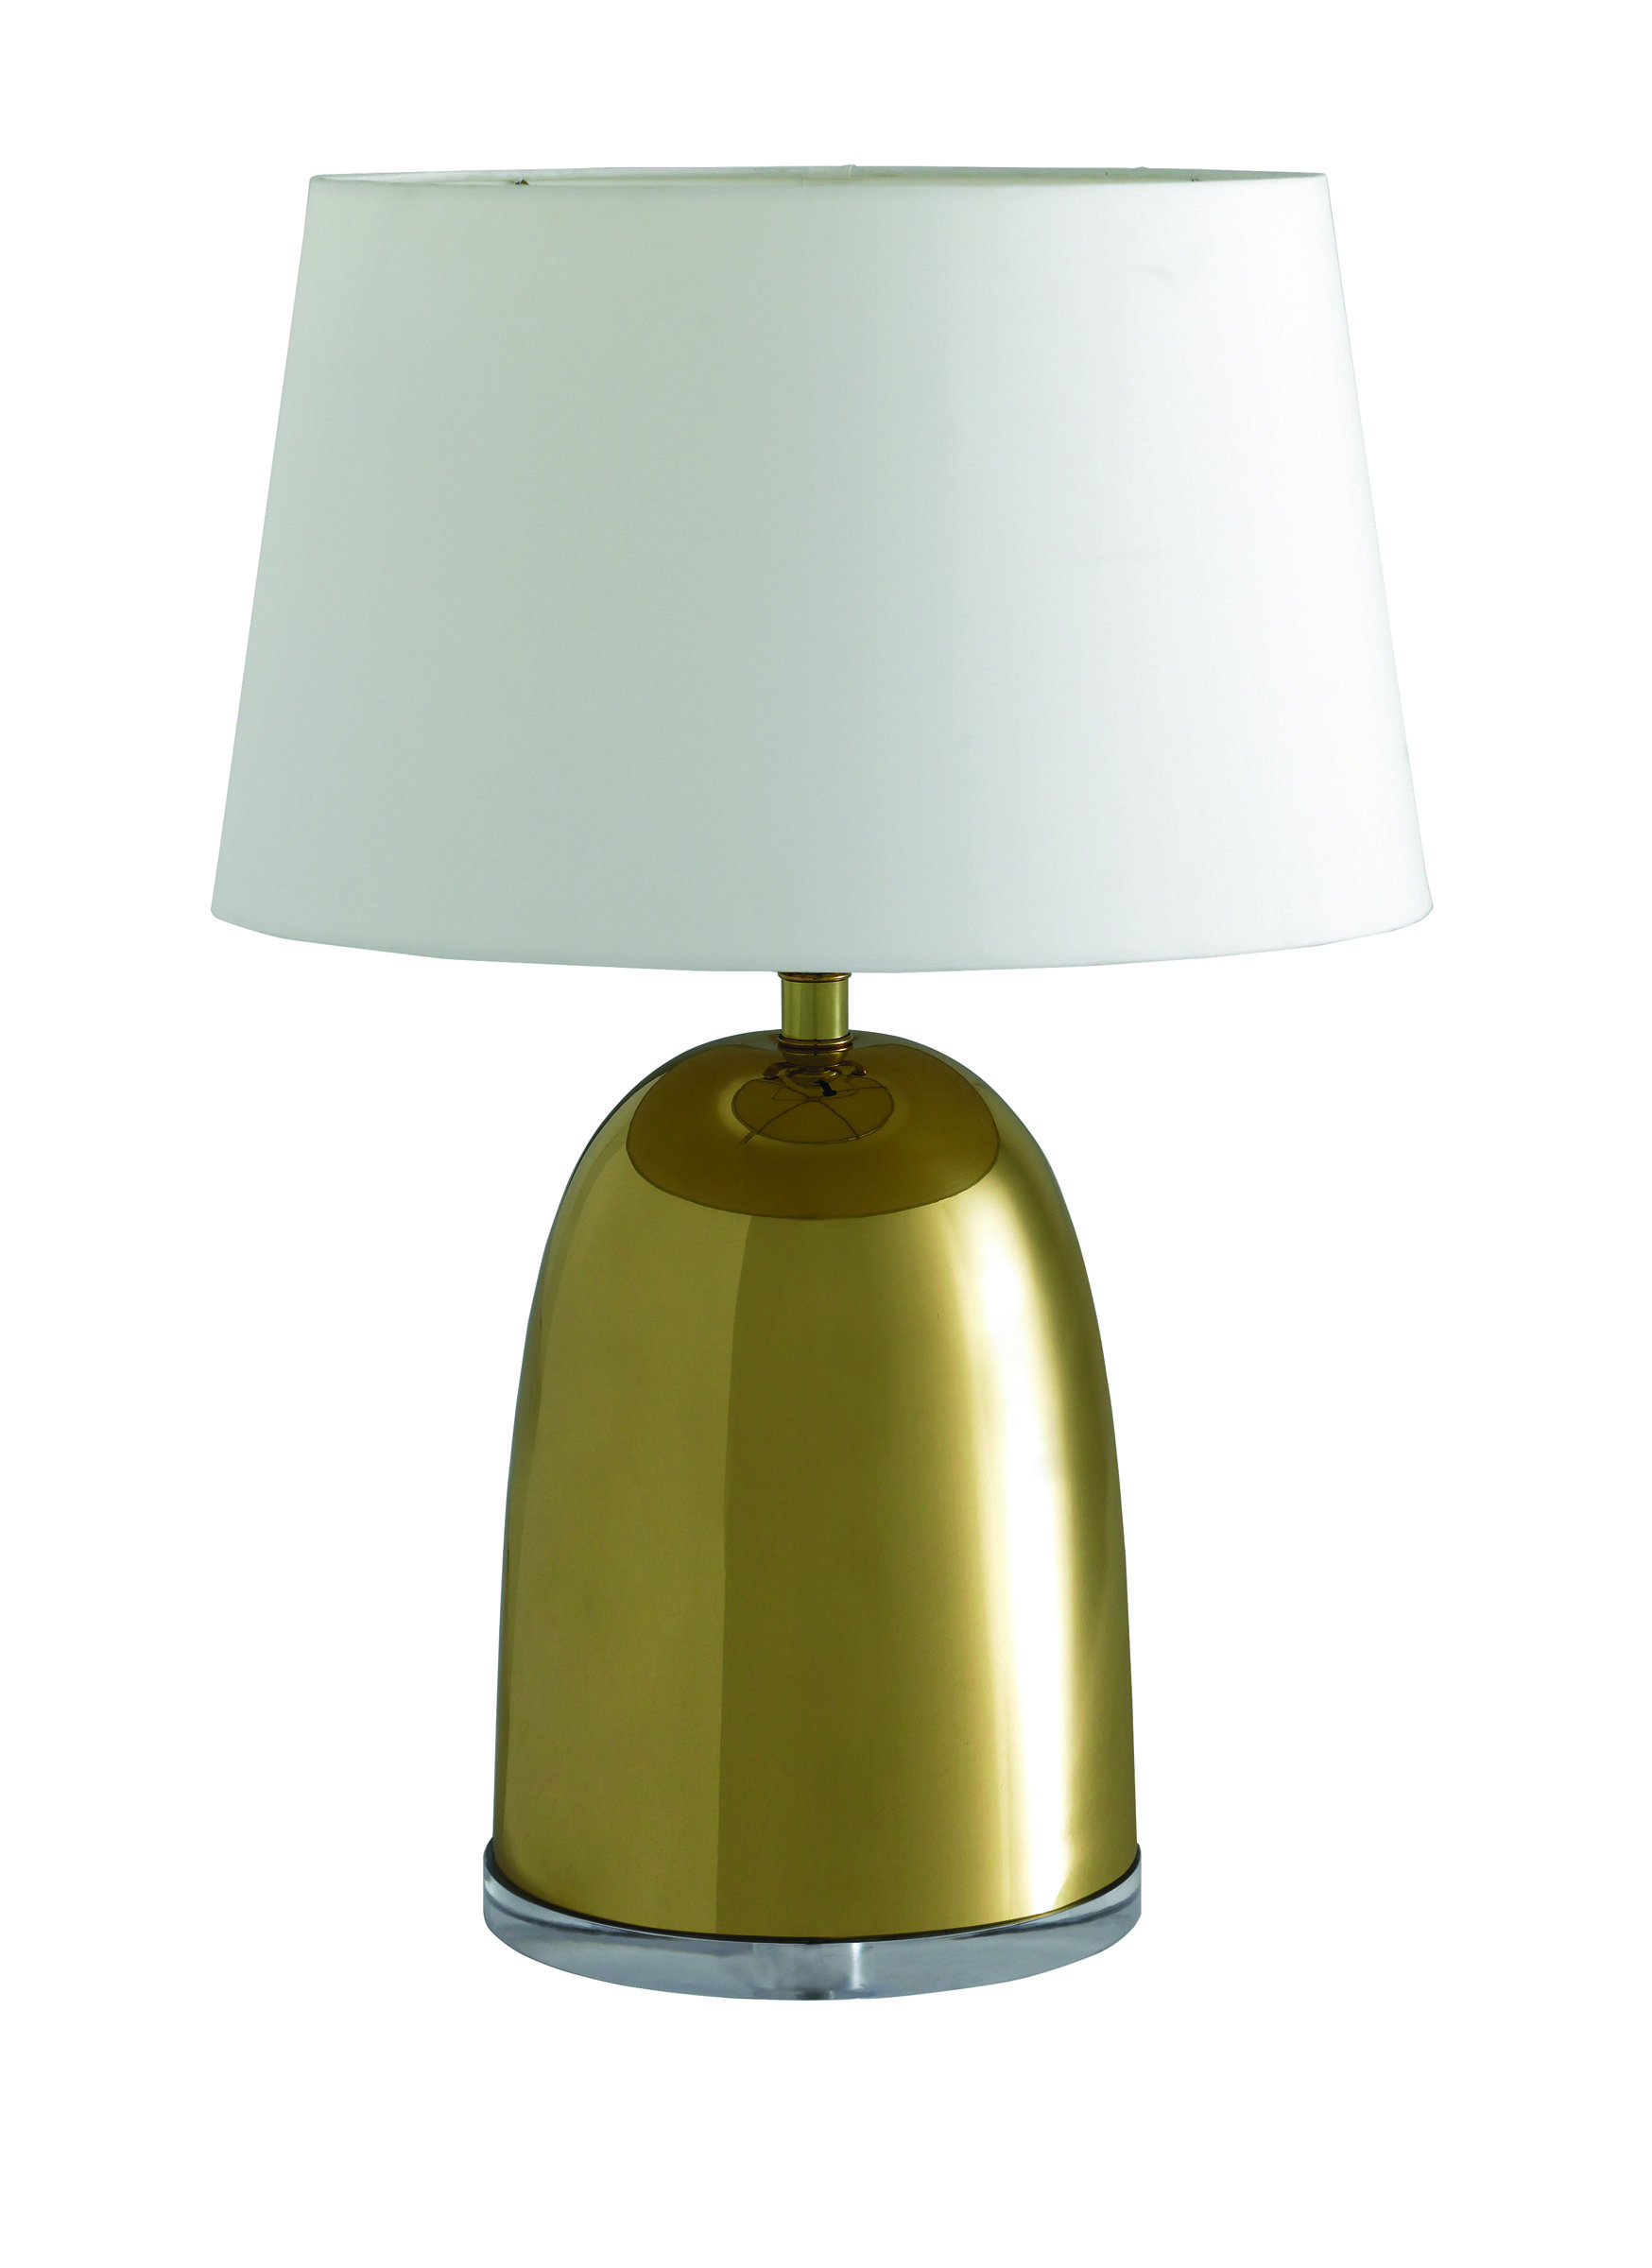 Caracole U2013 This New Lamp From The Caracole Collection Features A Bright  Brass Bullet Shaped